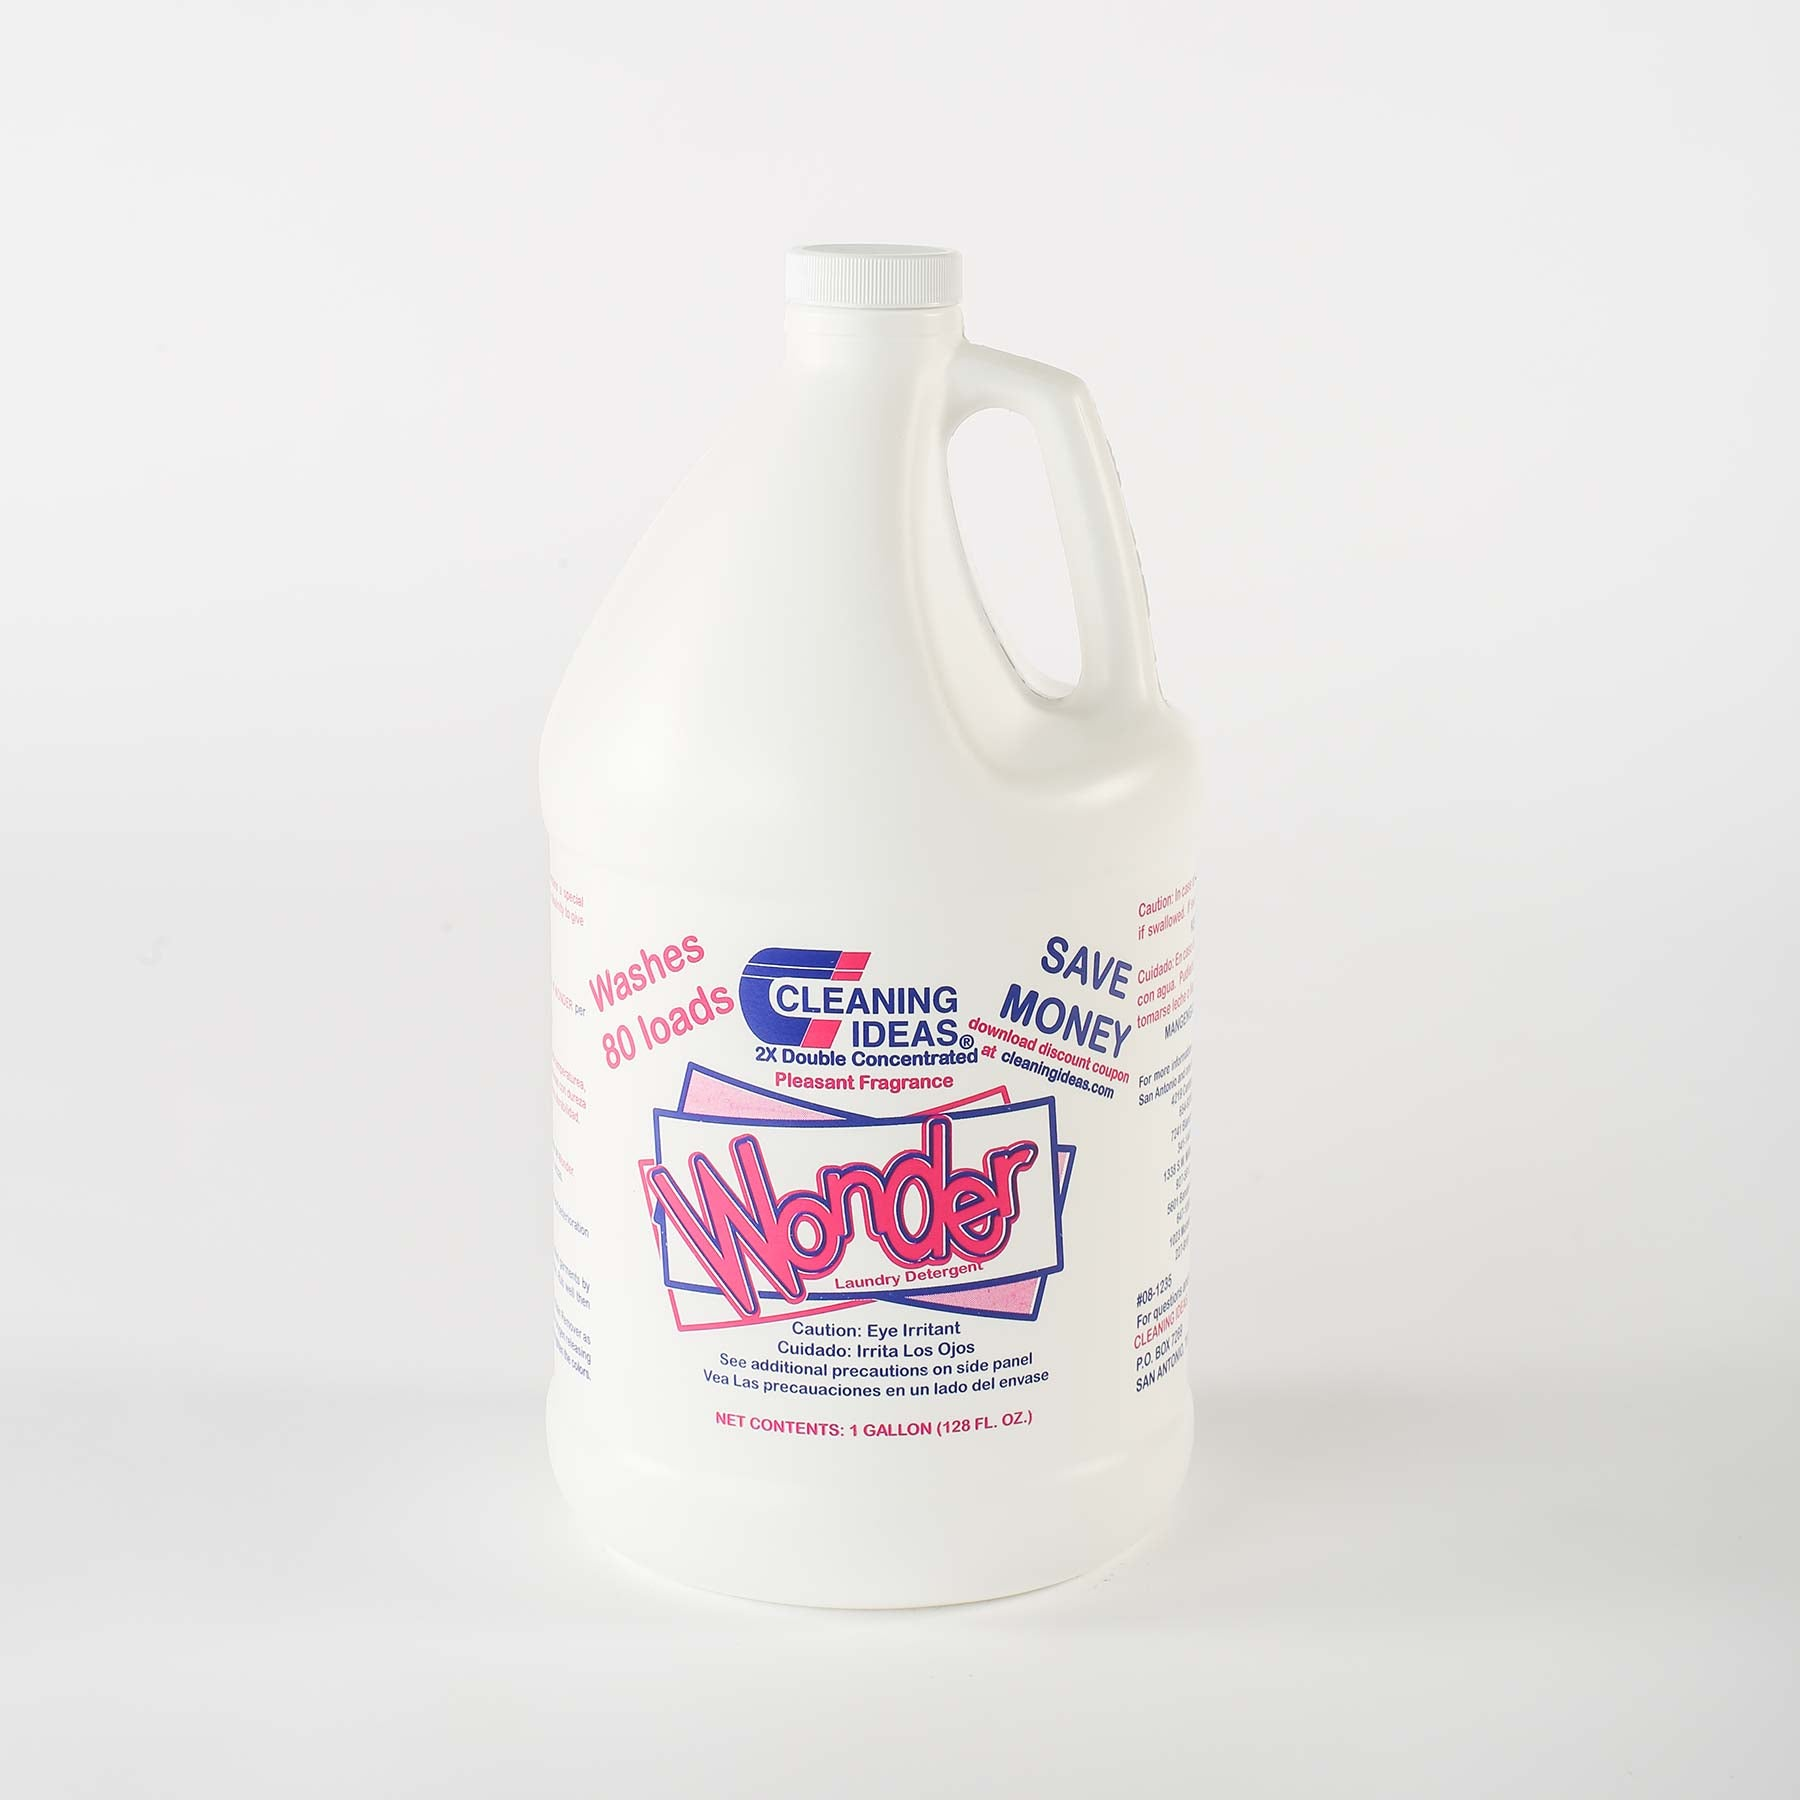 Wonder Laundry Detergent - Cleaning Ideas